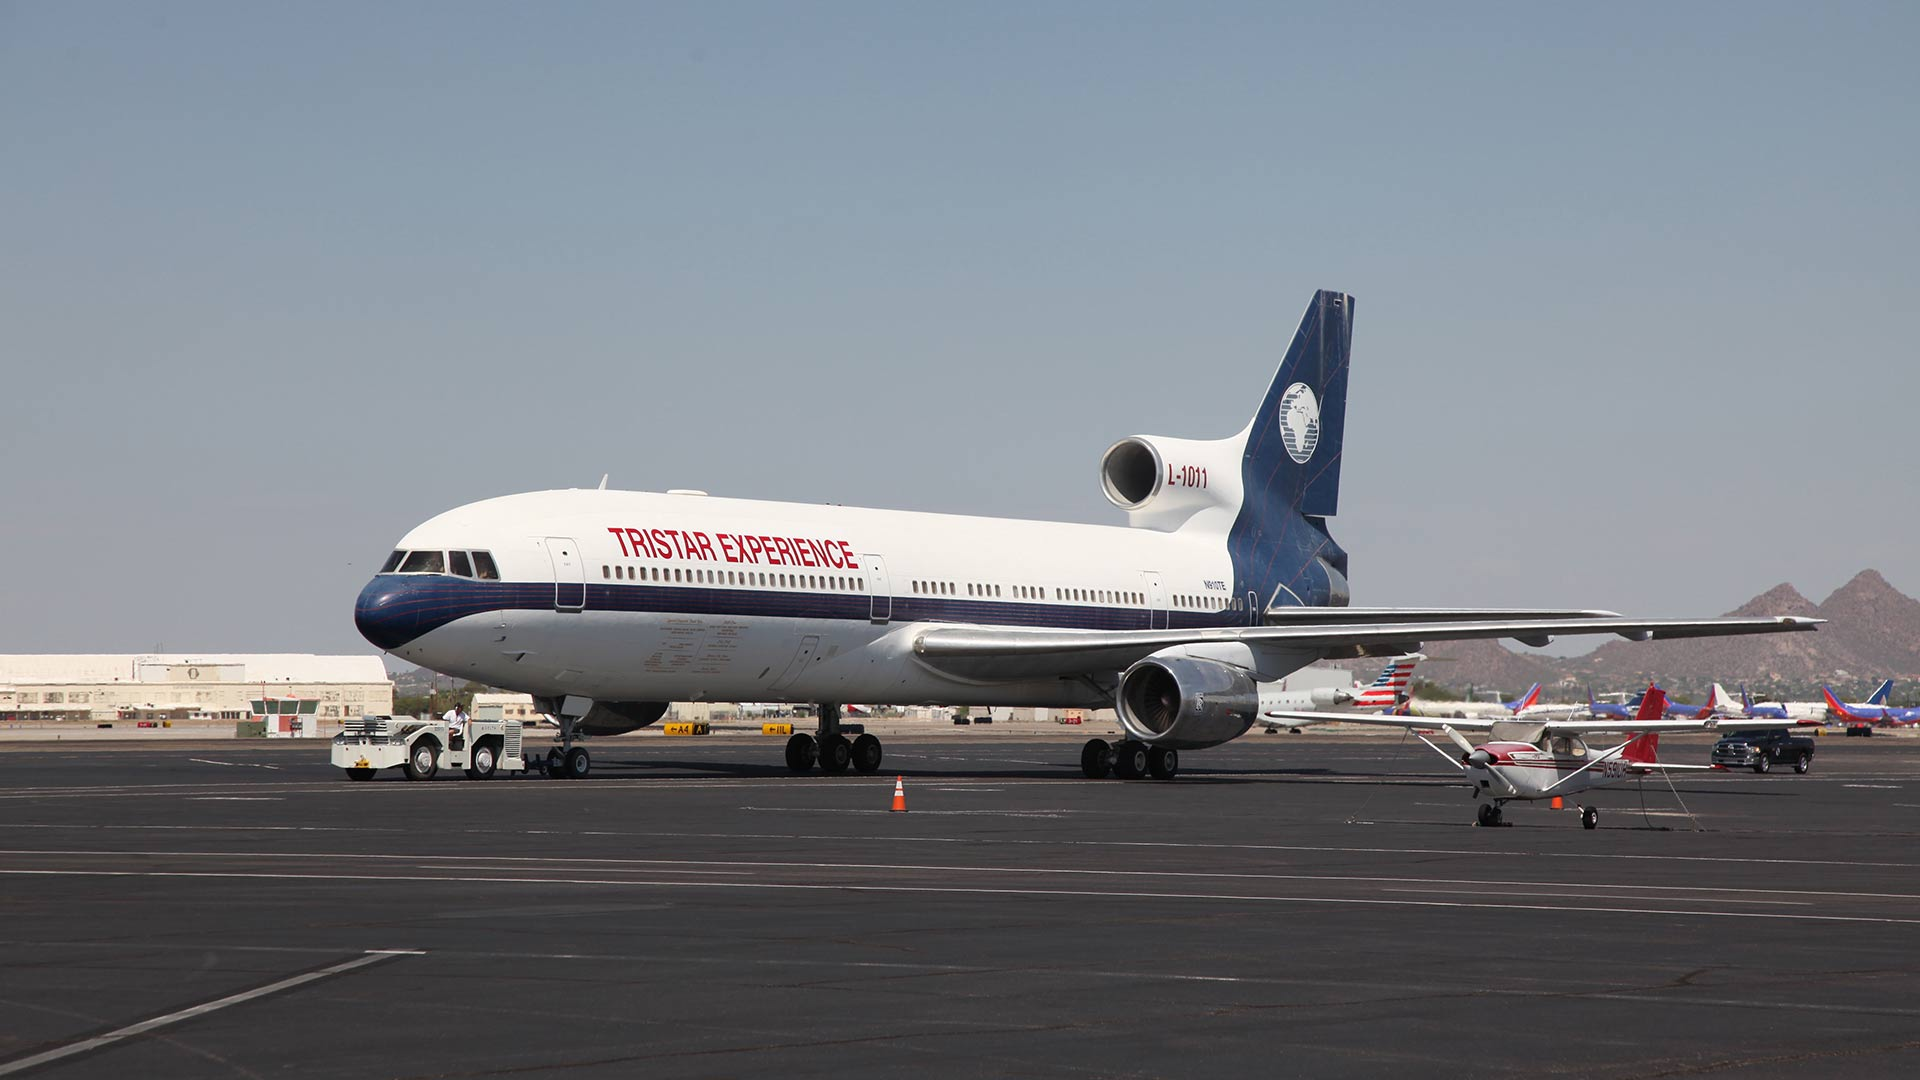 The Tristar Experience, formerly known as the Flying Hospital, will leave Tucson for the first time in more than 15 years as it heads to its new home in Kansas City.